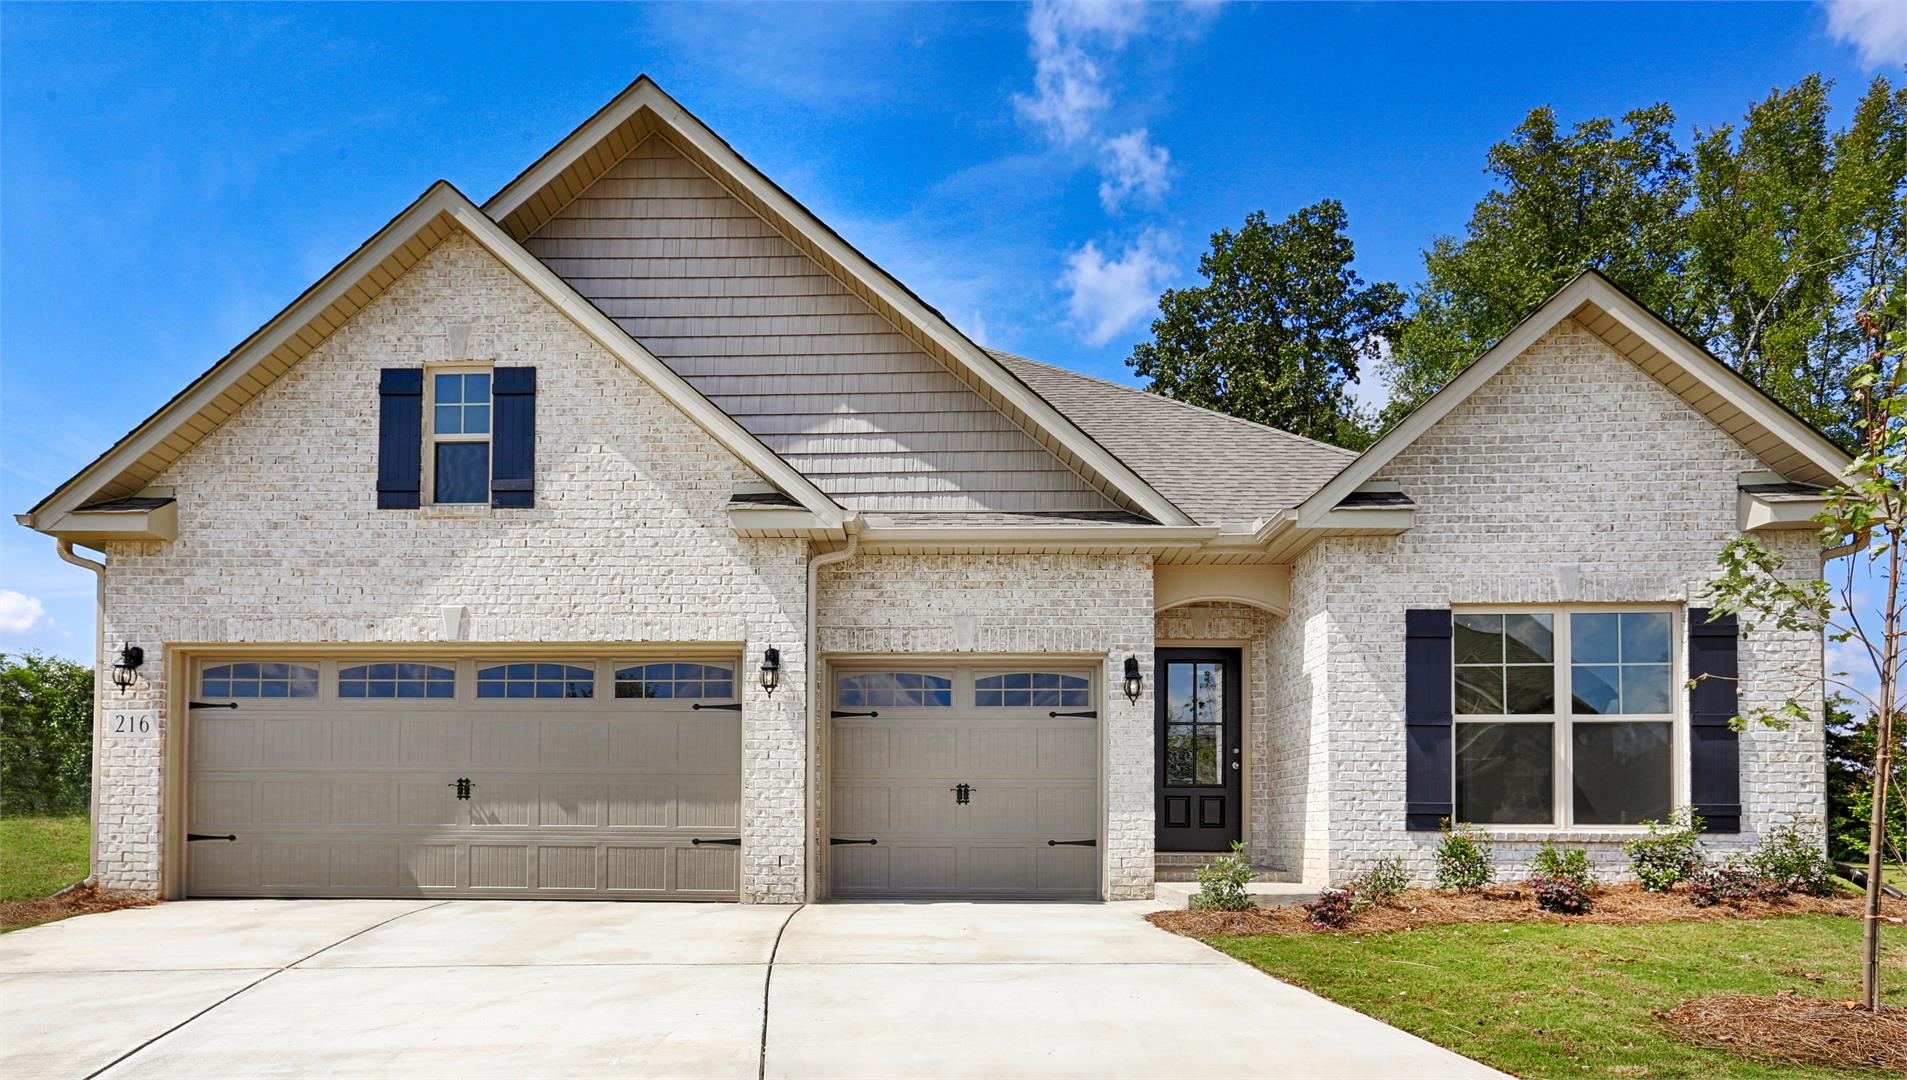 Laurenwood Preserve In Madison Al Prices Plans Availability